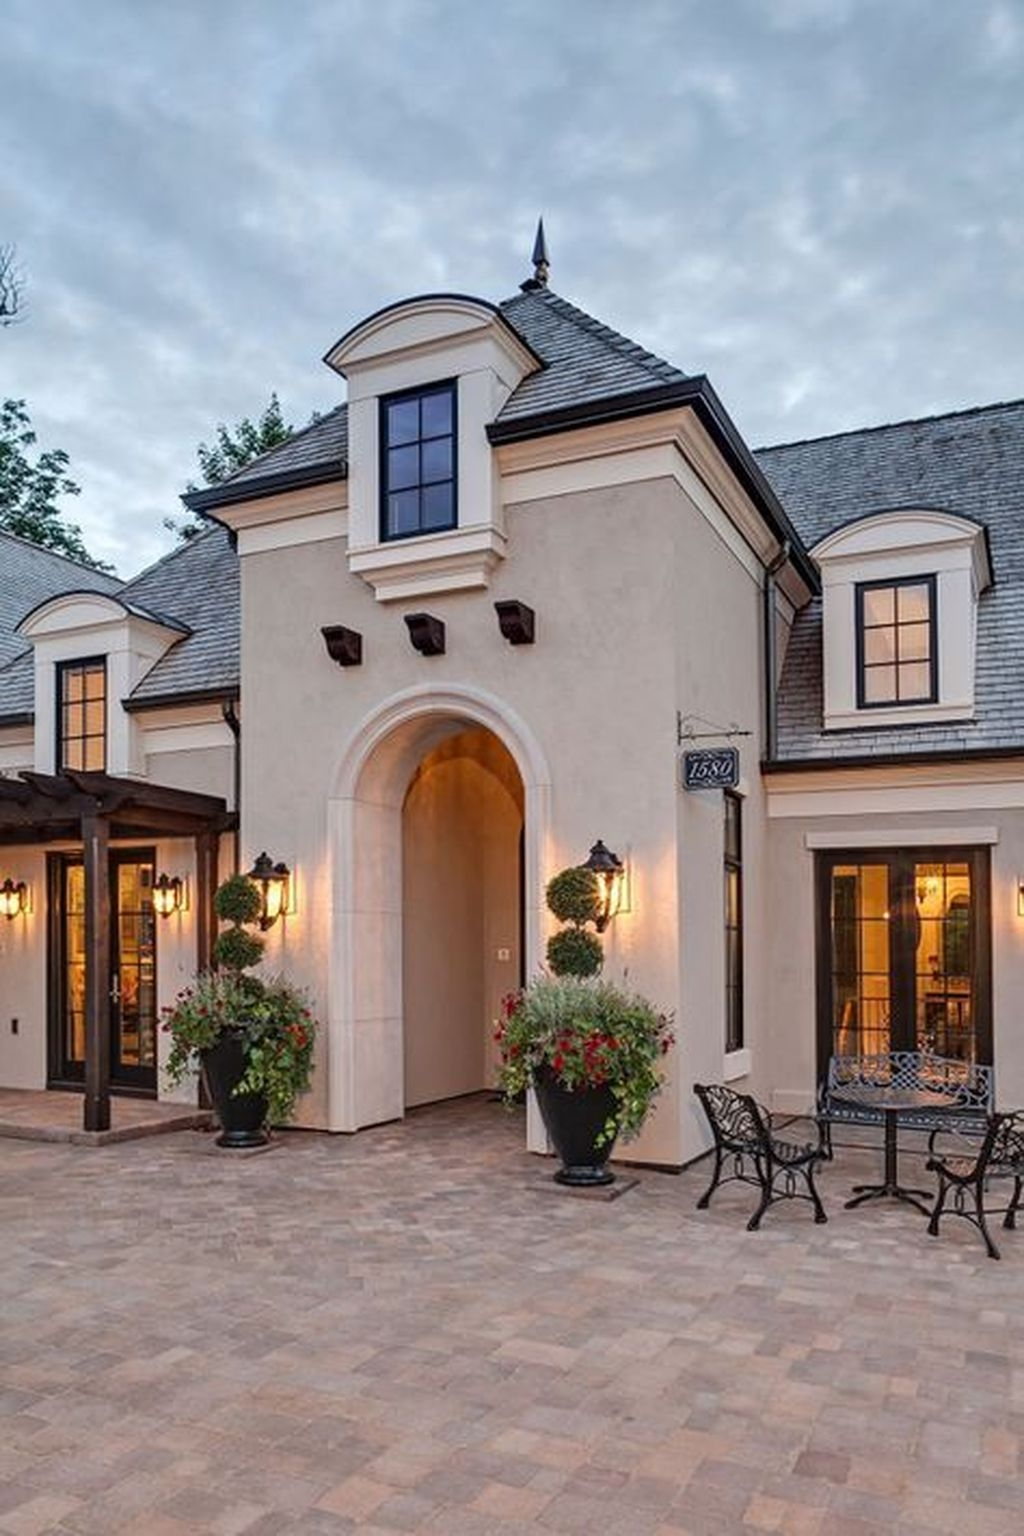 44 Stylish French Country Exterior For Your Home Design ...